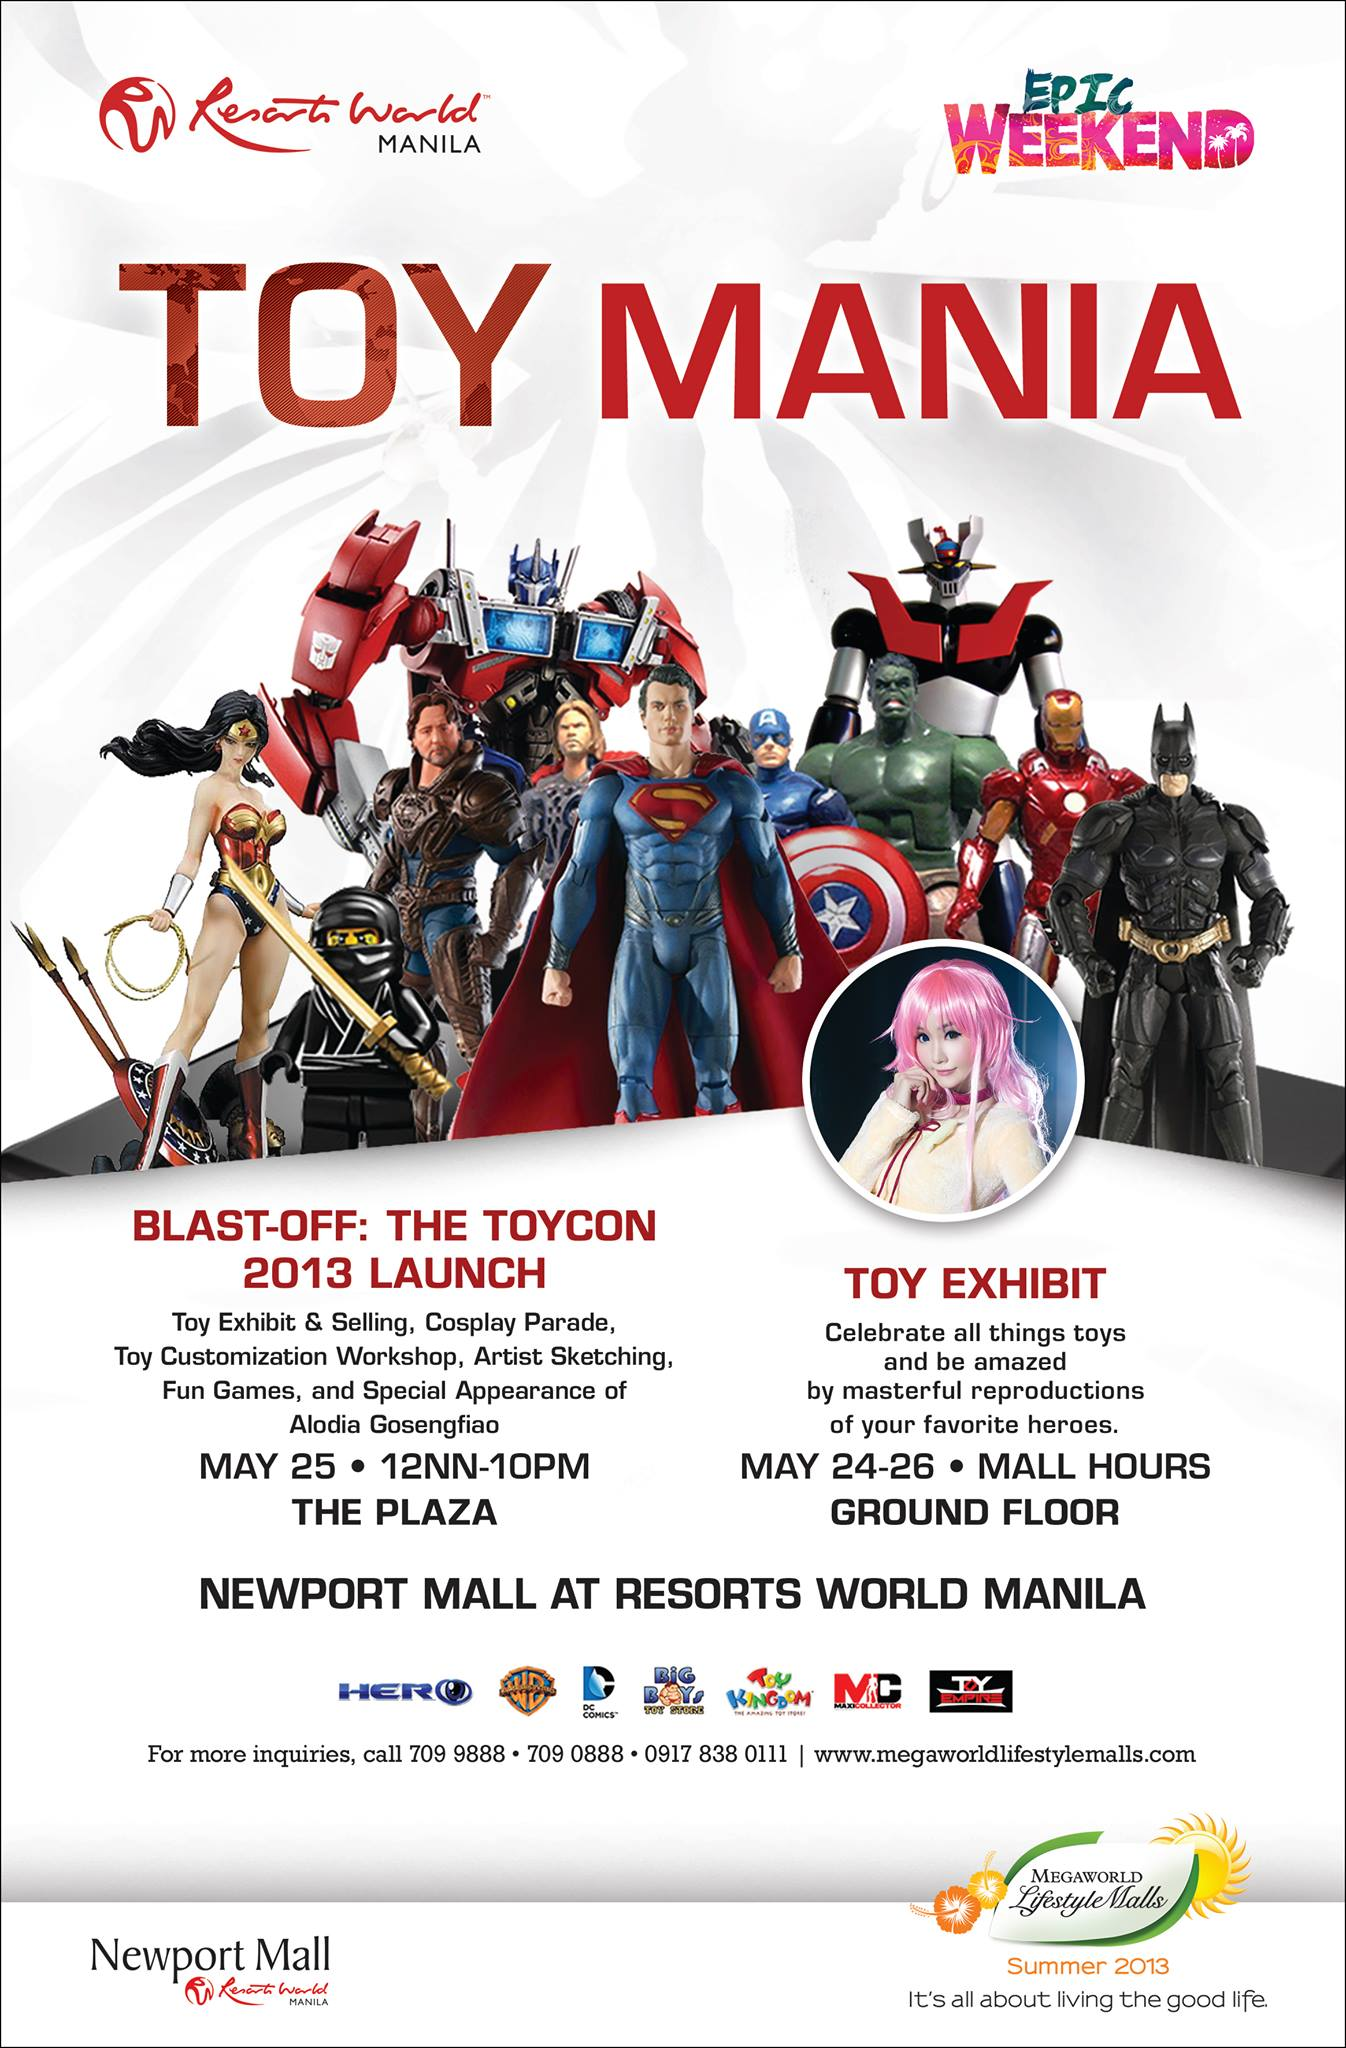 PH: Blast-Off: The Toycon 2013 Launch